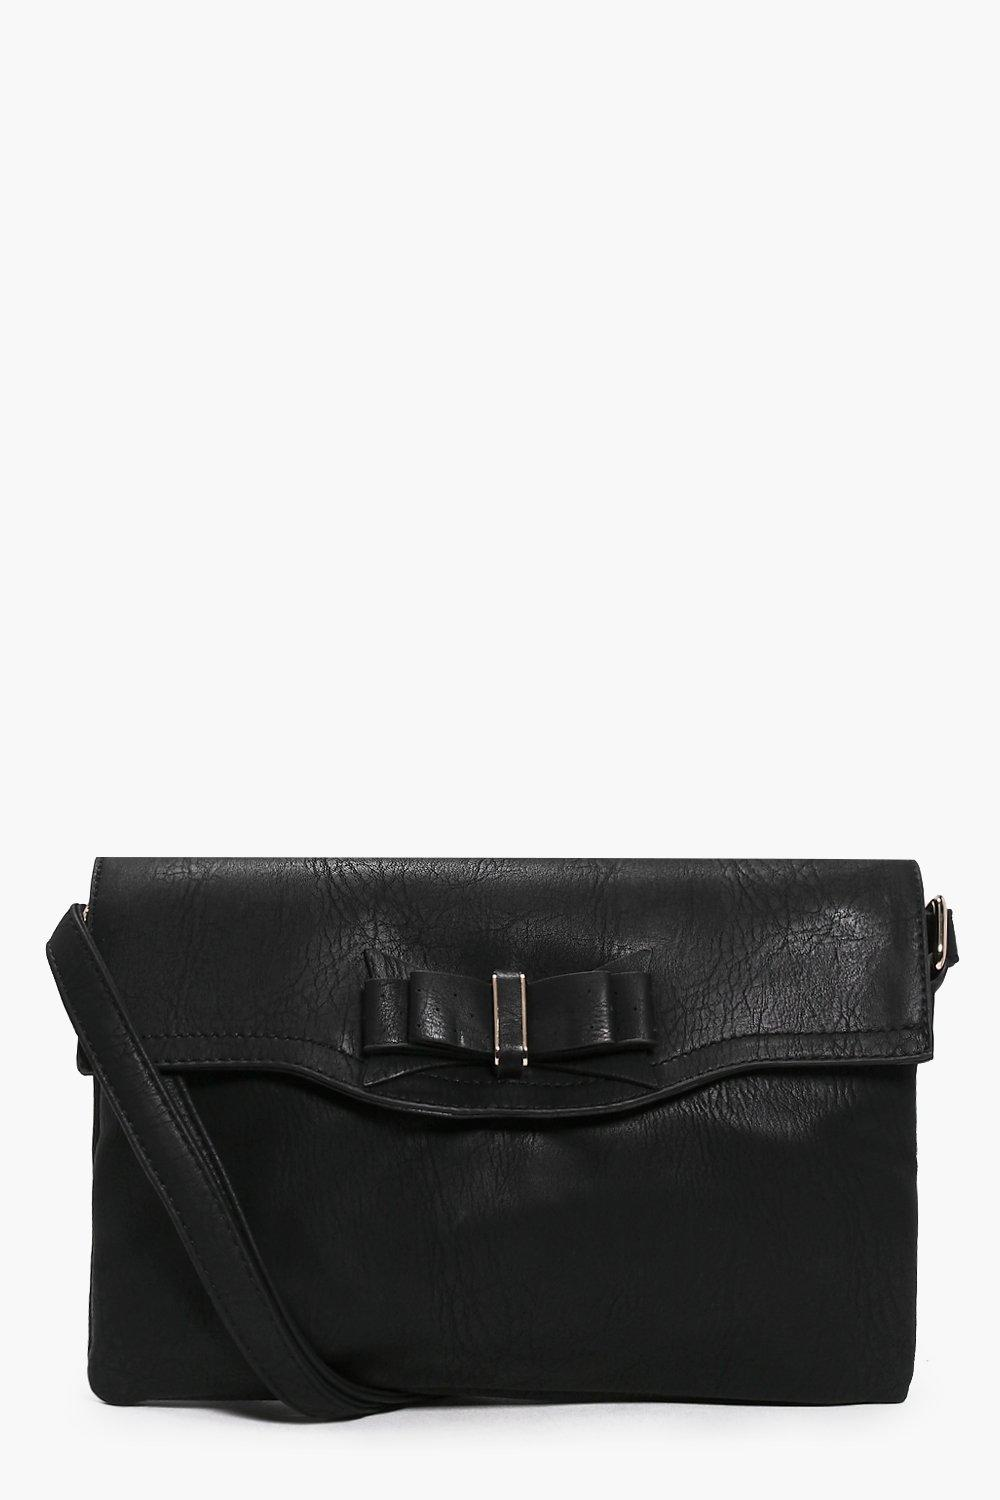 Evie Bow Detail Oversized Body Bag